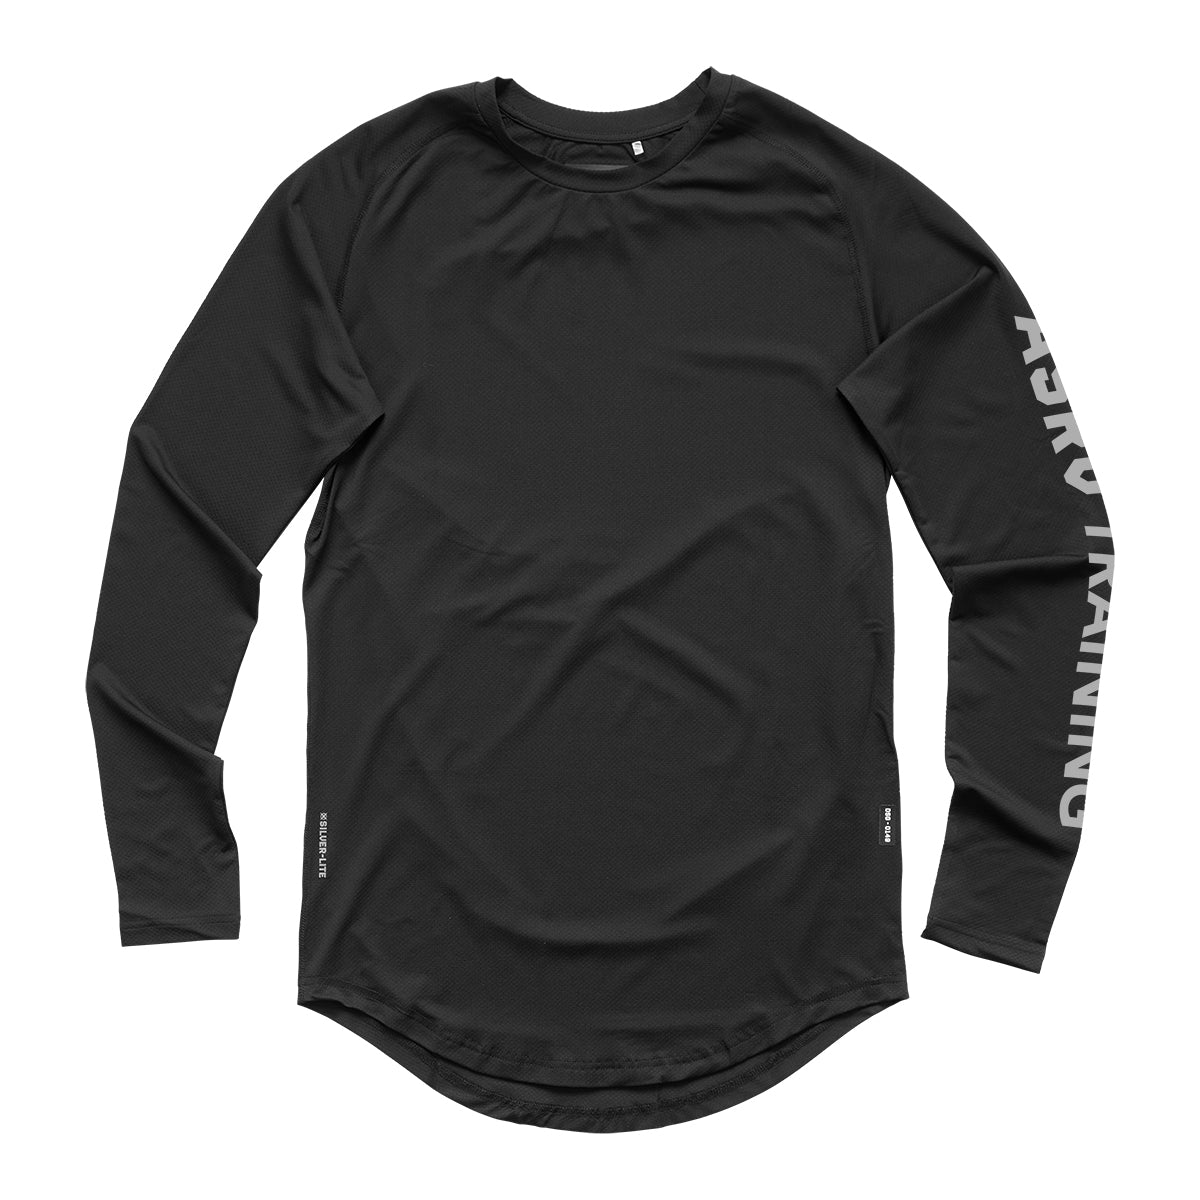 0205. Silver-Lite® Logo Long Sleeve - Black